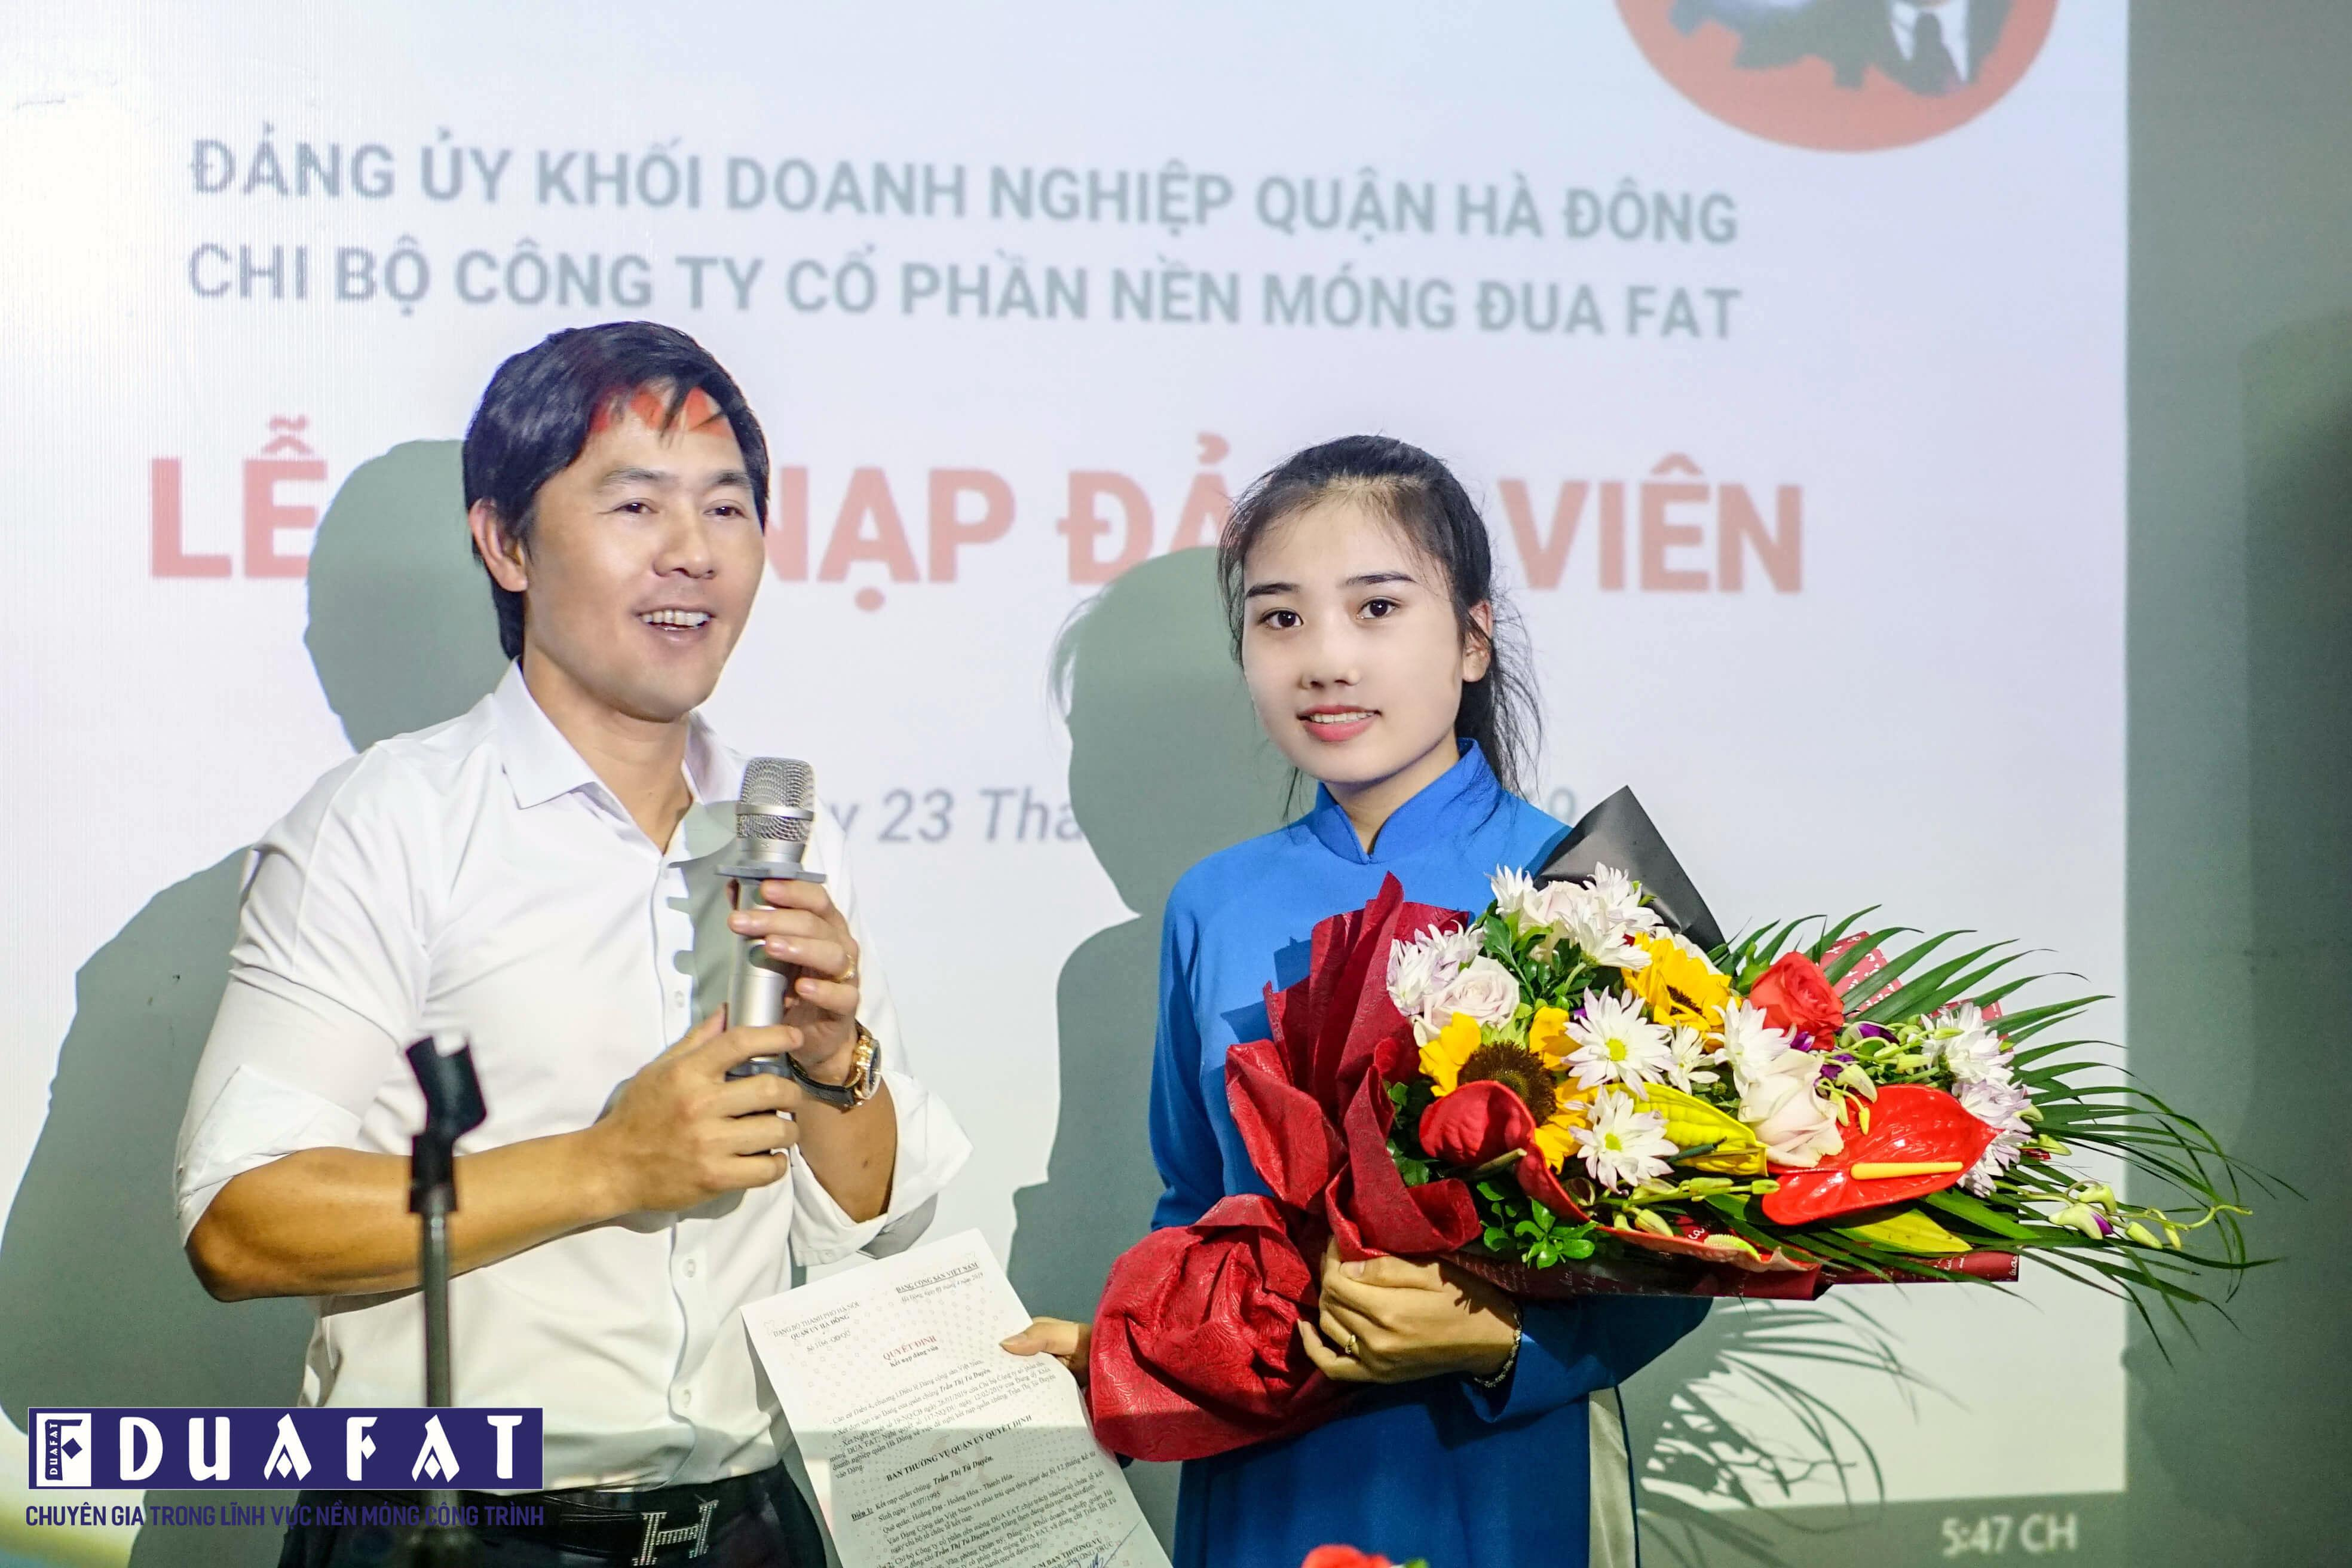 CEREMORY OF COMMUNIST PARTY ADMISSION AT DUA FAT